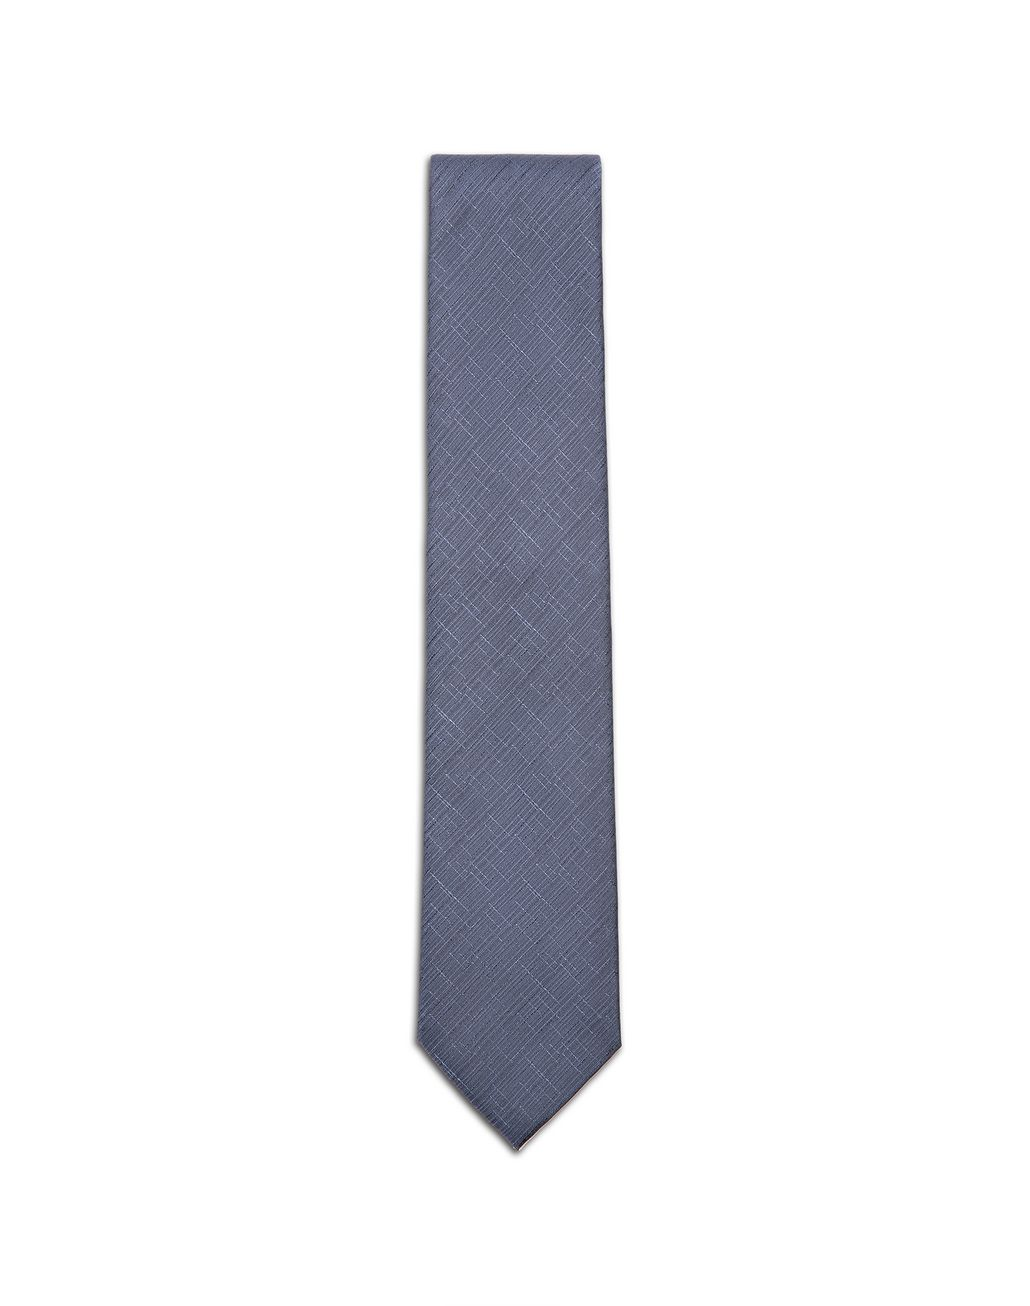 BRIONI Bluette Shantung Tie Tie & Pocket Square Man f